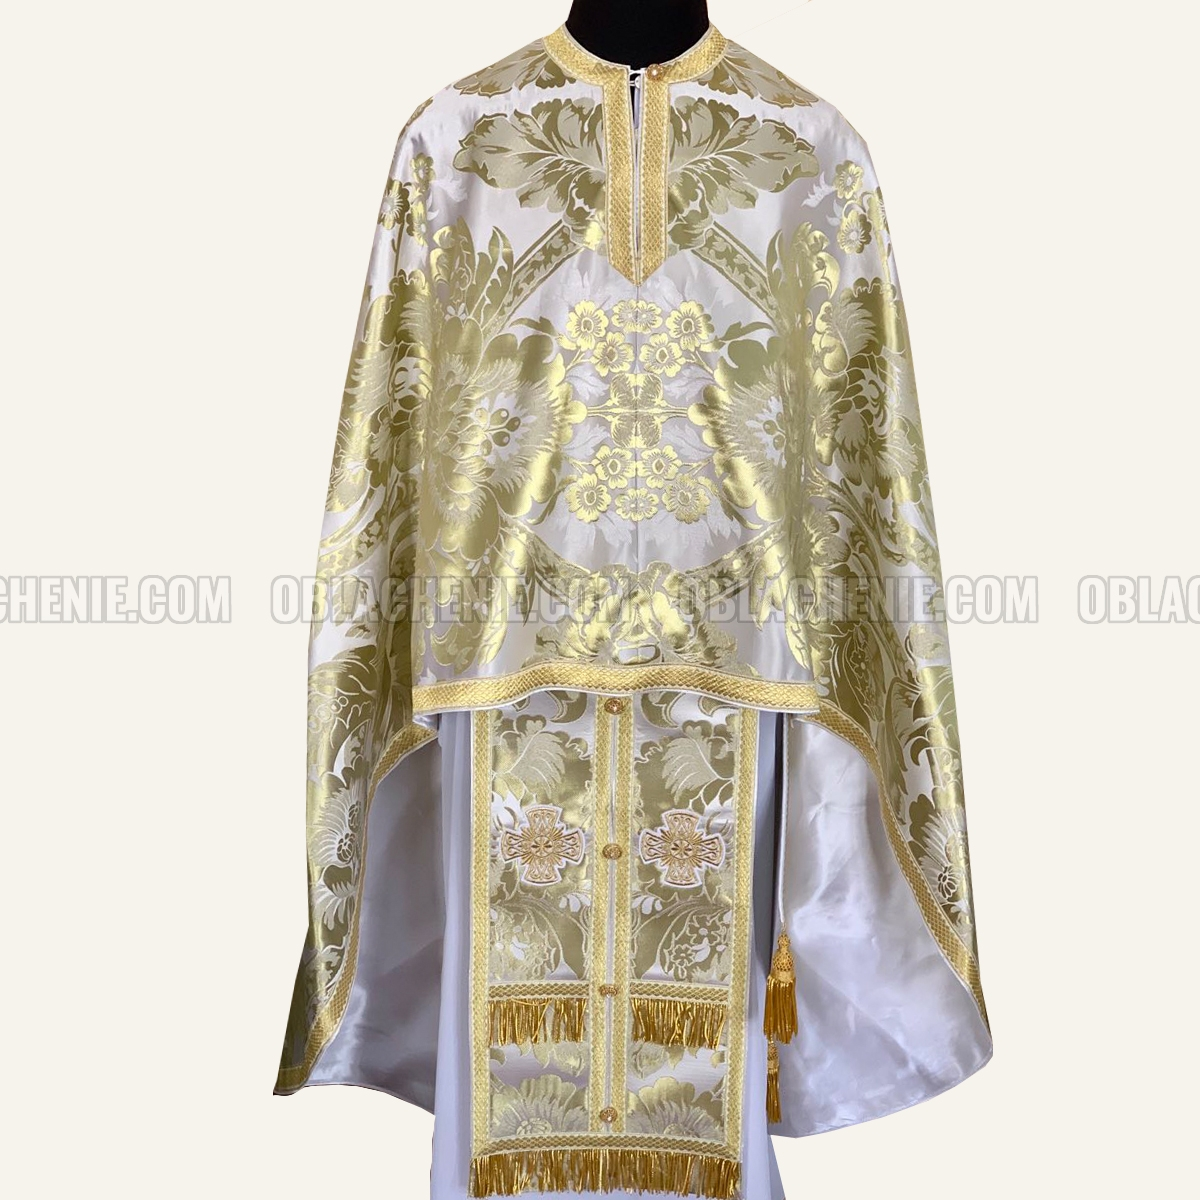 PRIEST'S VESTMENTS 10983